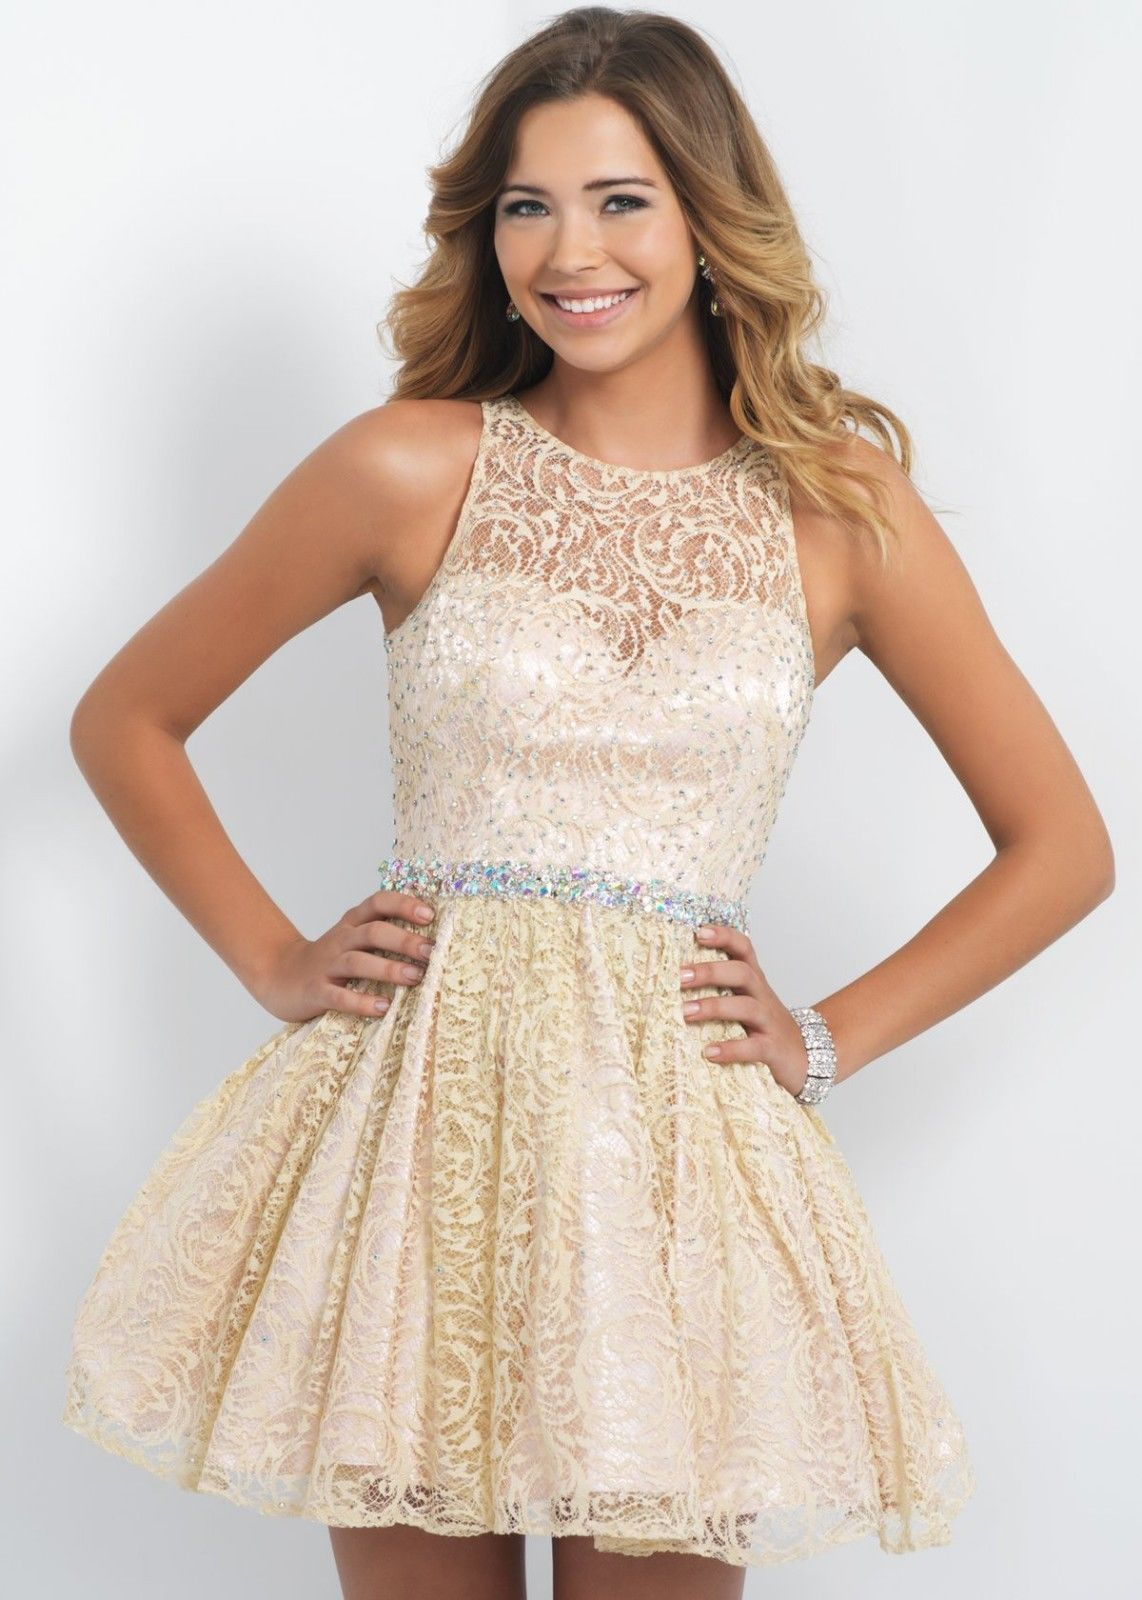 Sexy Champagne Lace Short Prom Dress Homecoming Party Dress Cocktail Ball  Gowns d4146b26b